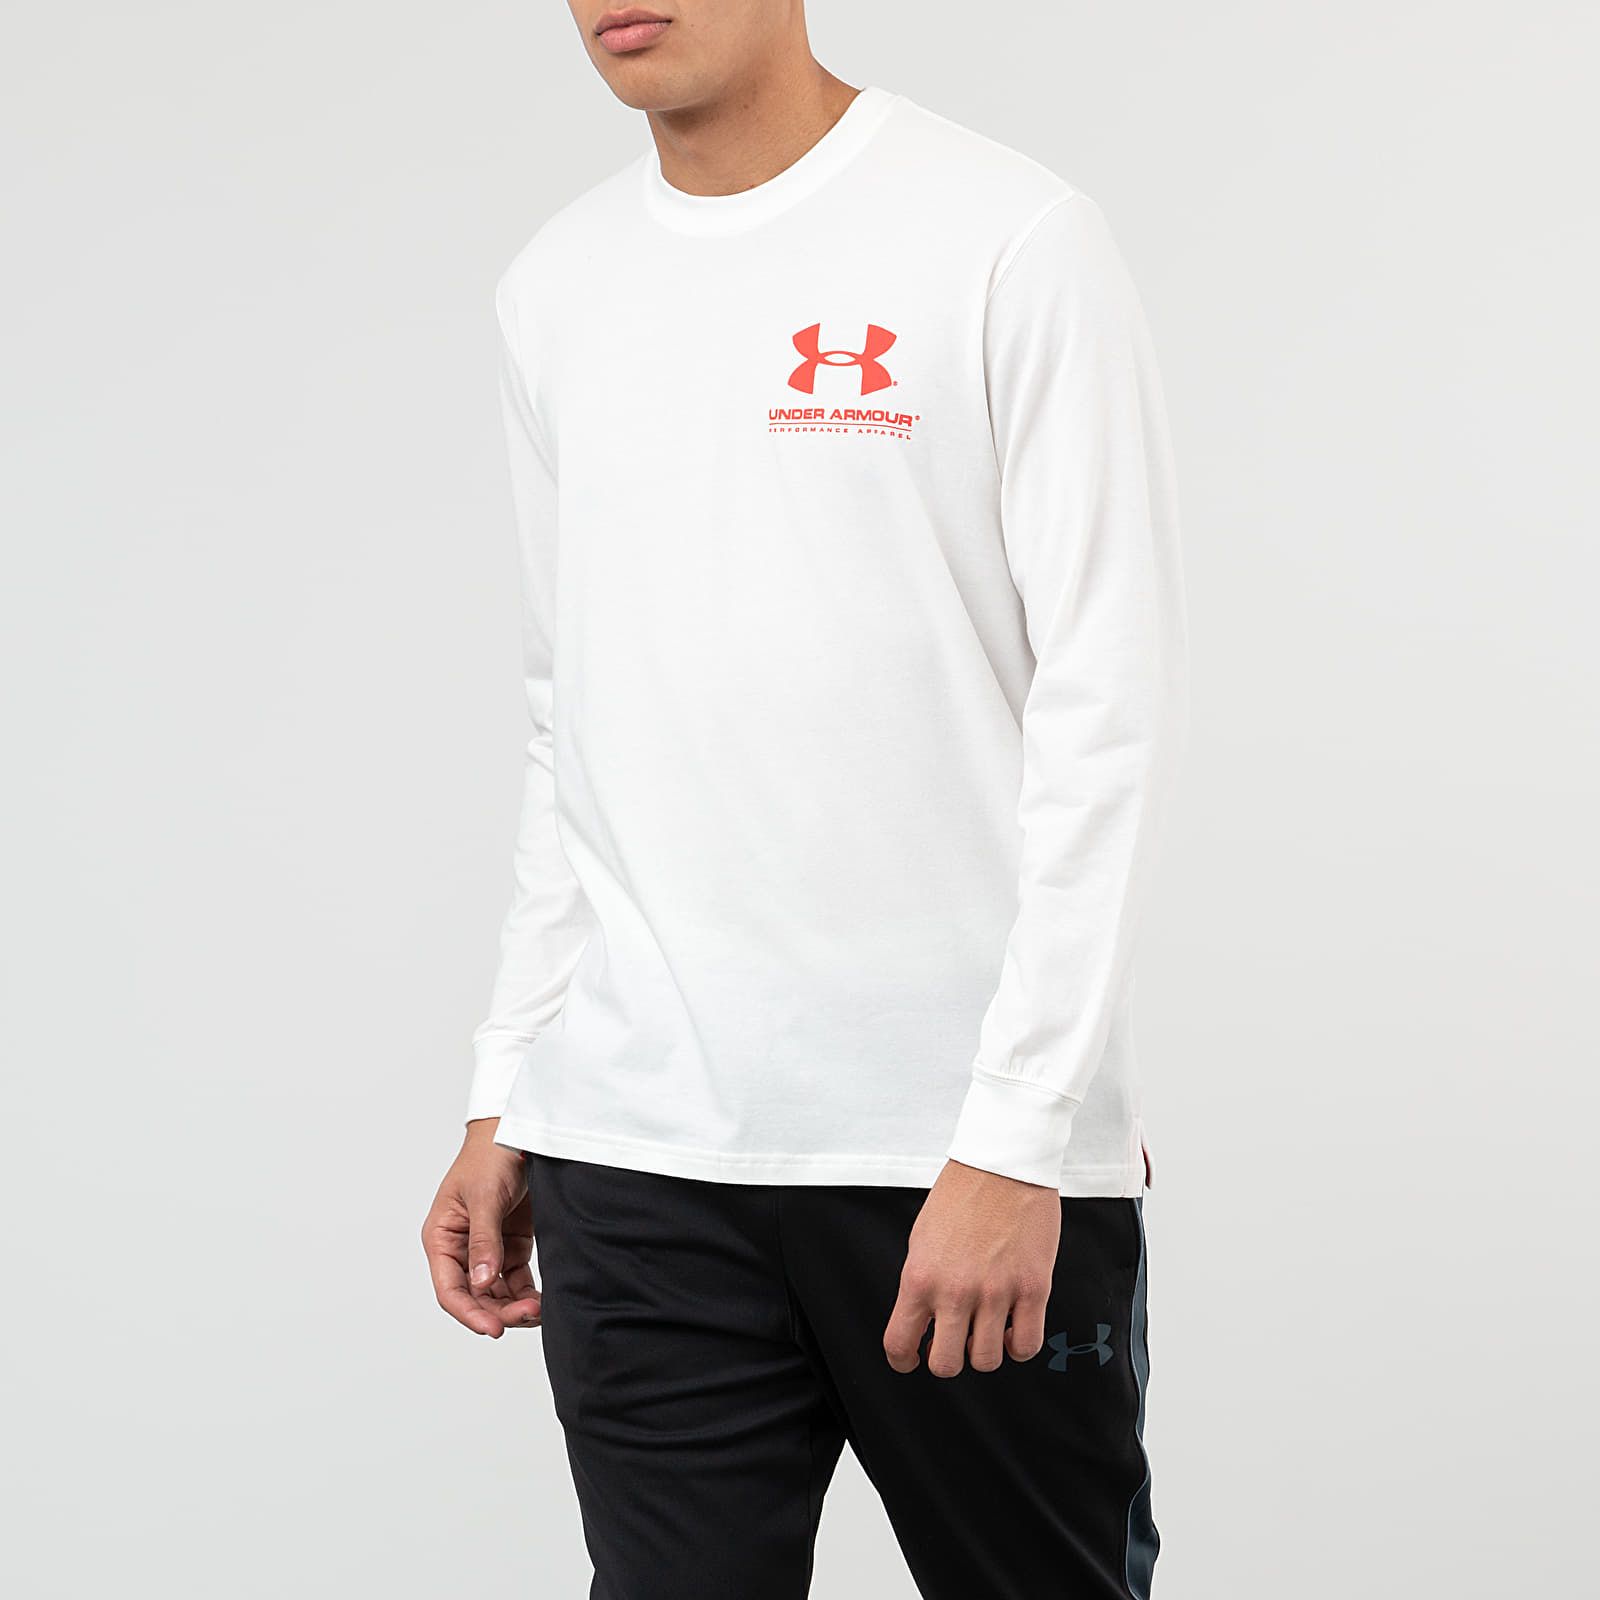 Under Armour Performance Originators Long Sleeve Tee